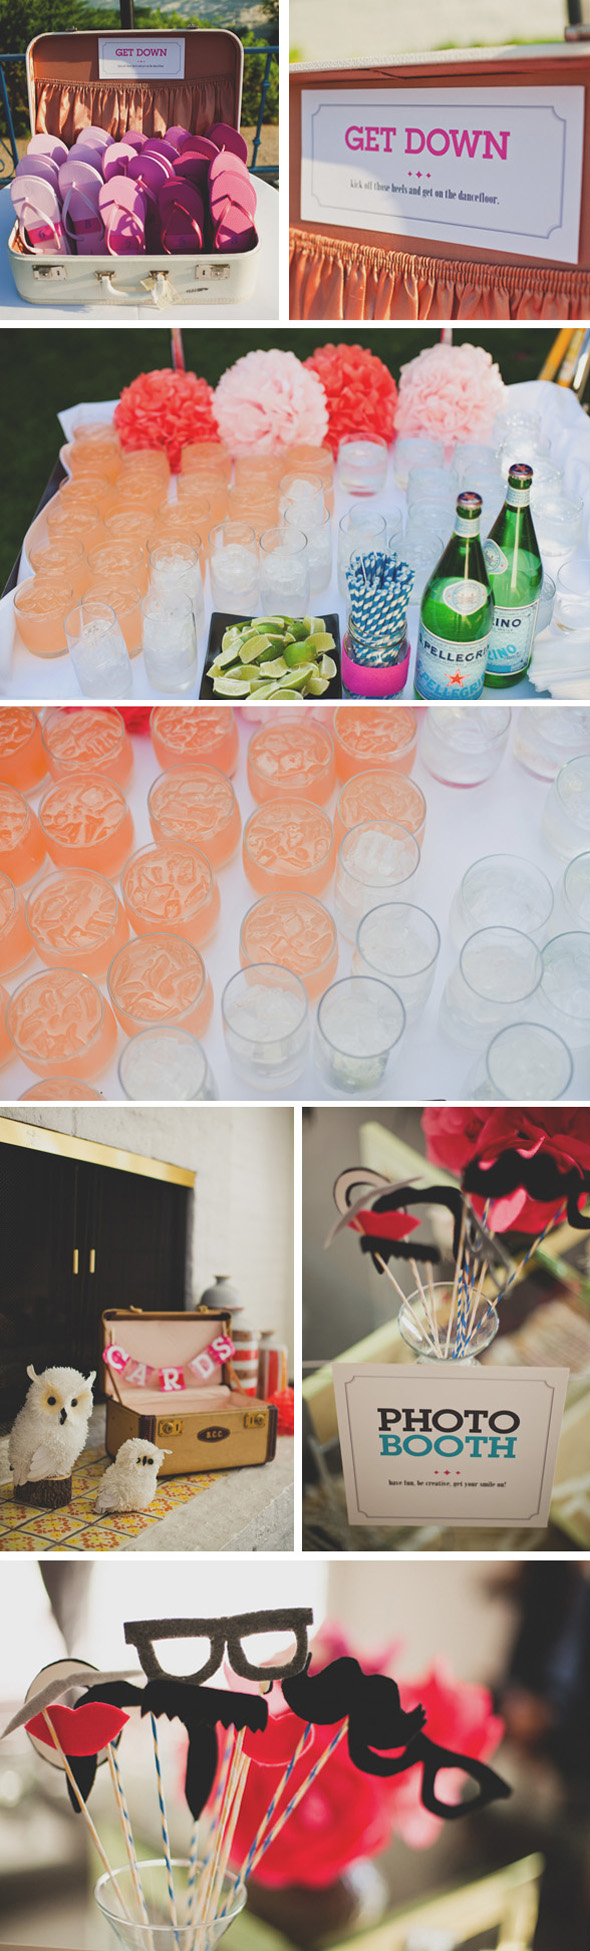 colorful wedding ideas1 The Parker Palm Springs Destination Wedding